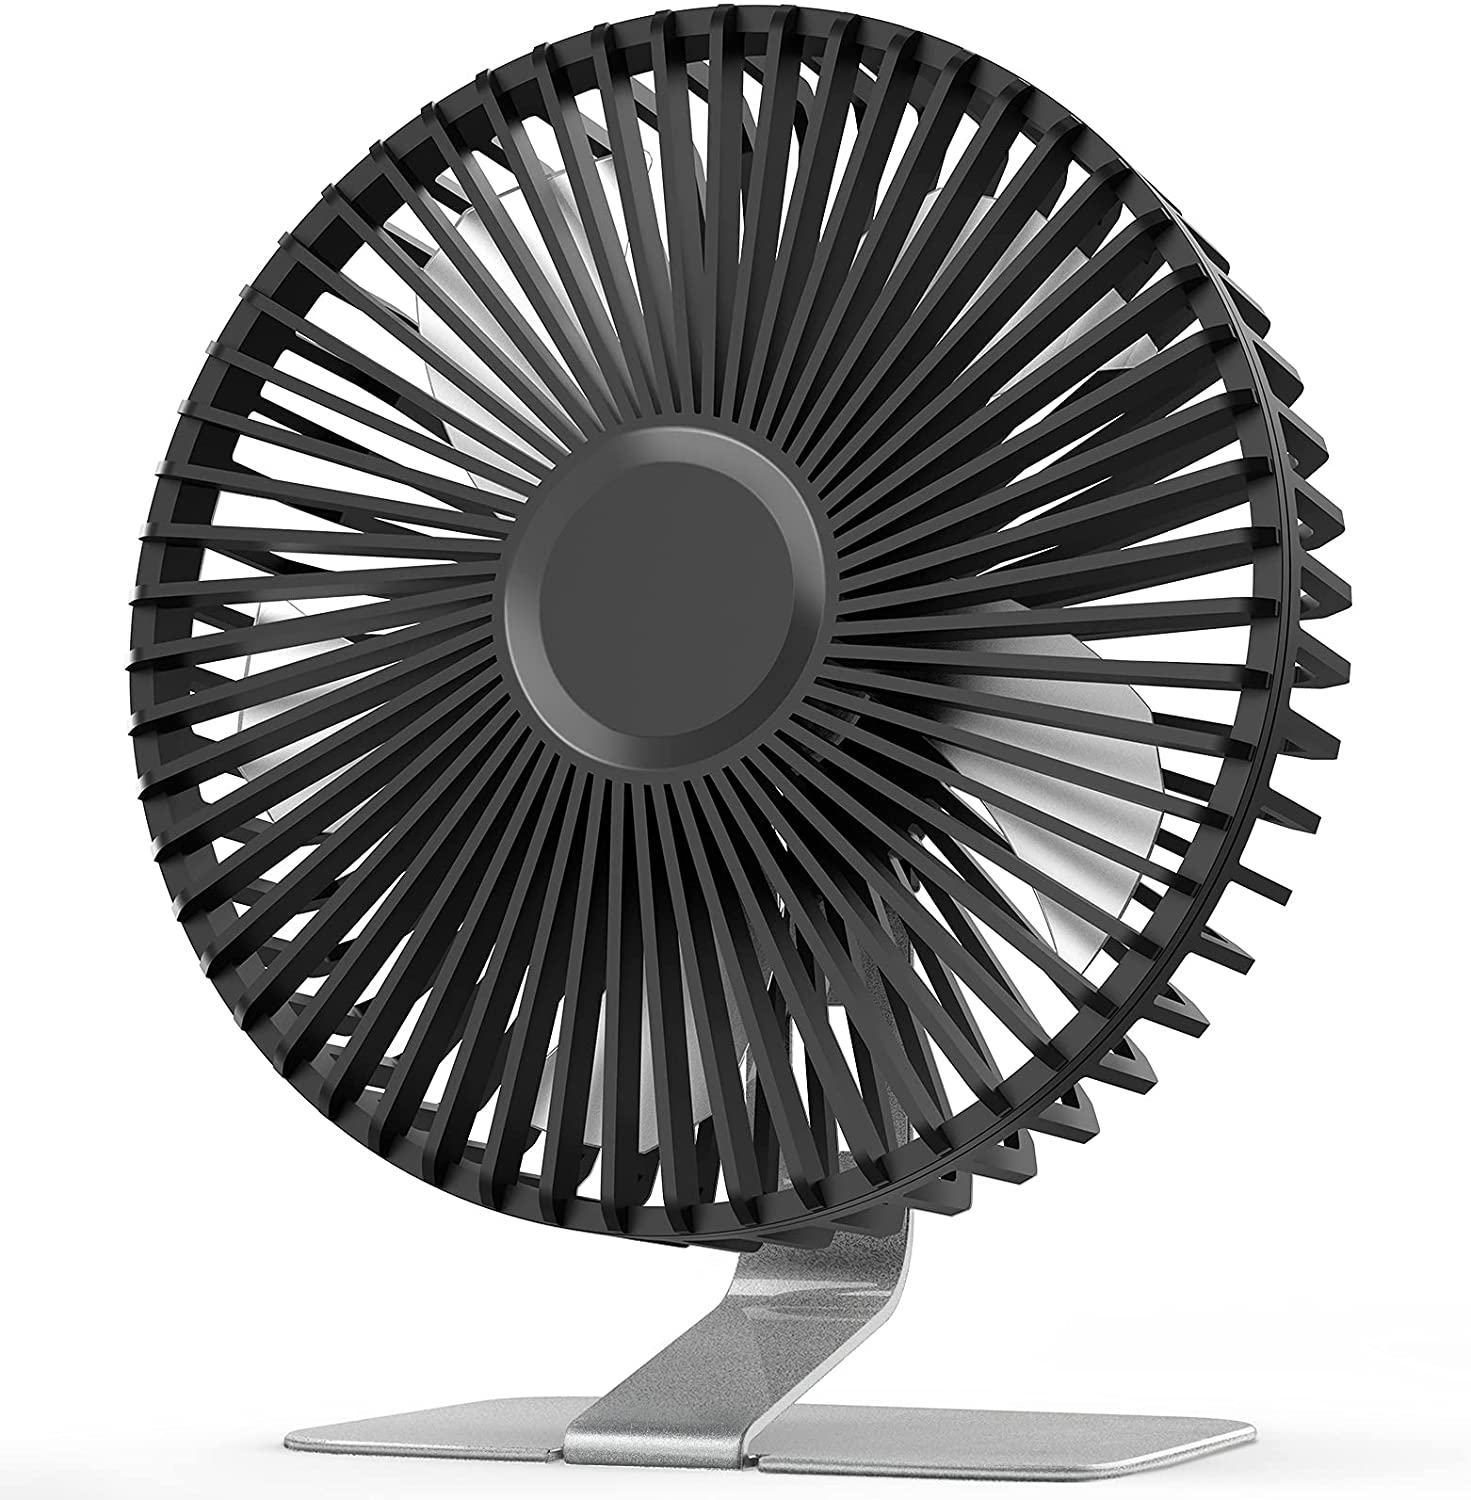 SLENPET 6 inch USB Desk Fan, Upgraded Strong Airflow, 4 Speeds, Ultra-quiet, 90° Rotation for Better Cooling, Portable Mini Powerful Desktop Fan, Small Personal Cooling Fan for Home Office Outdoor